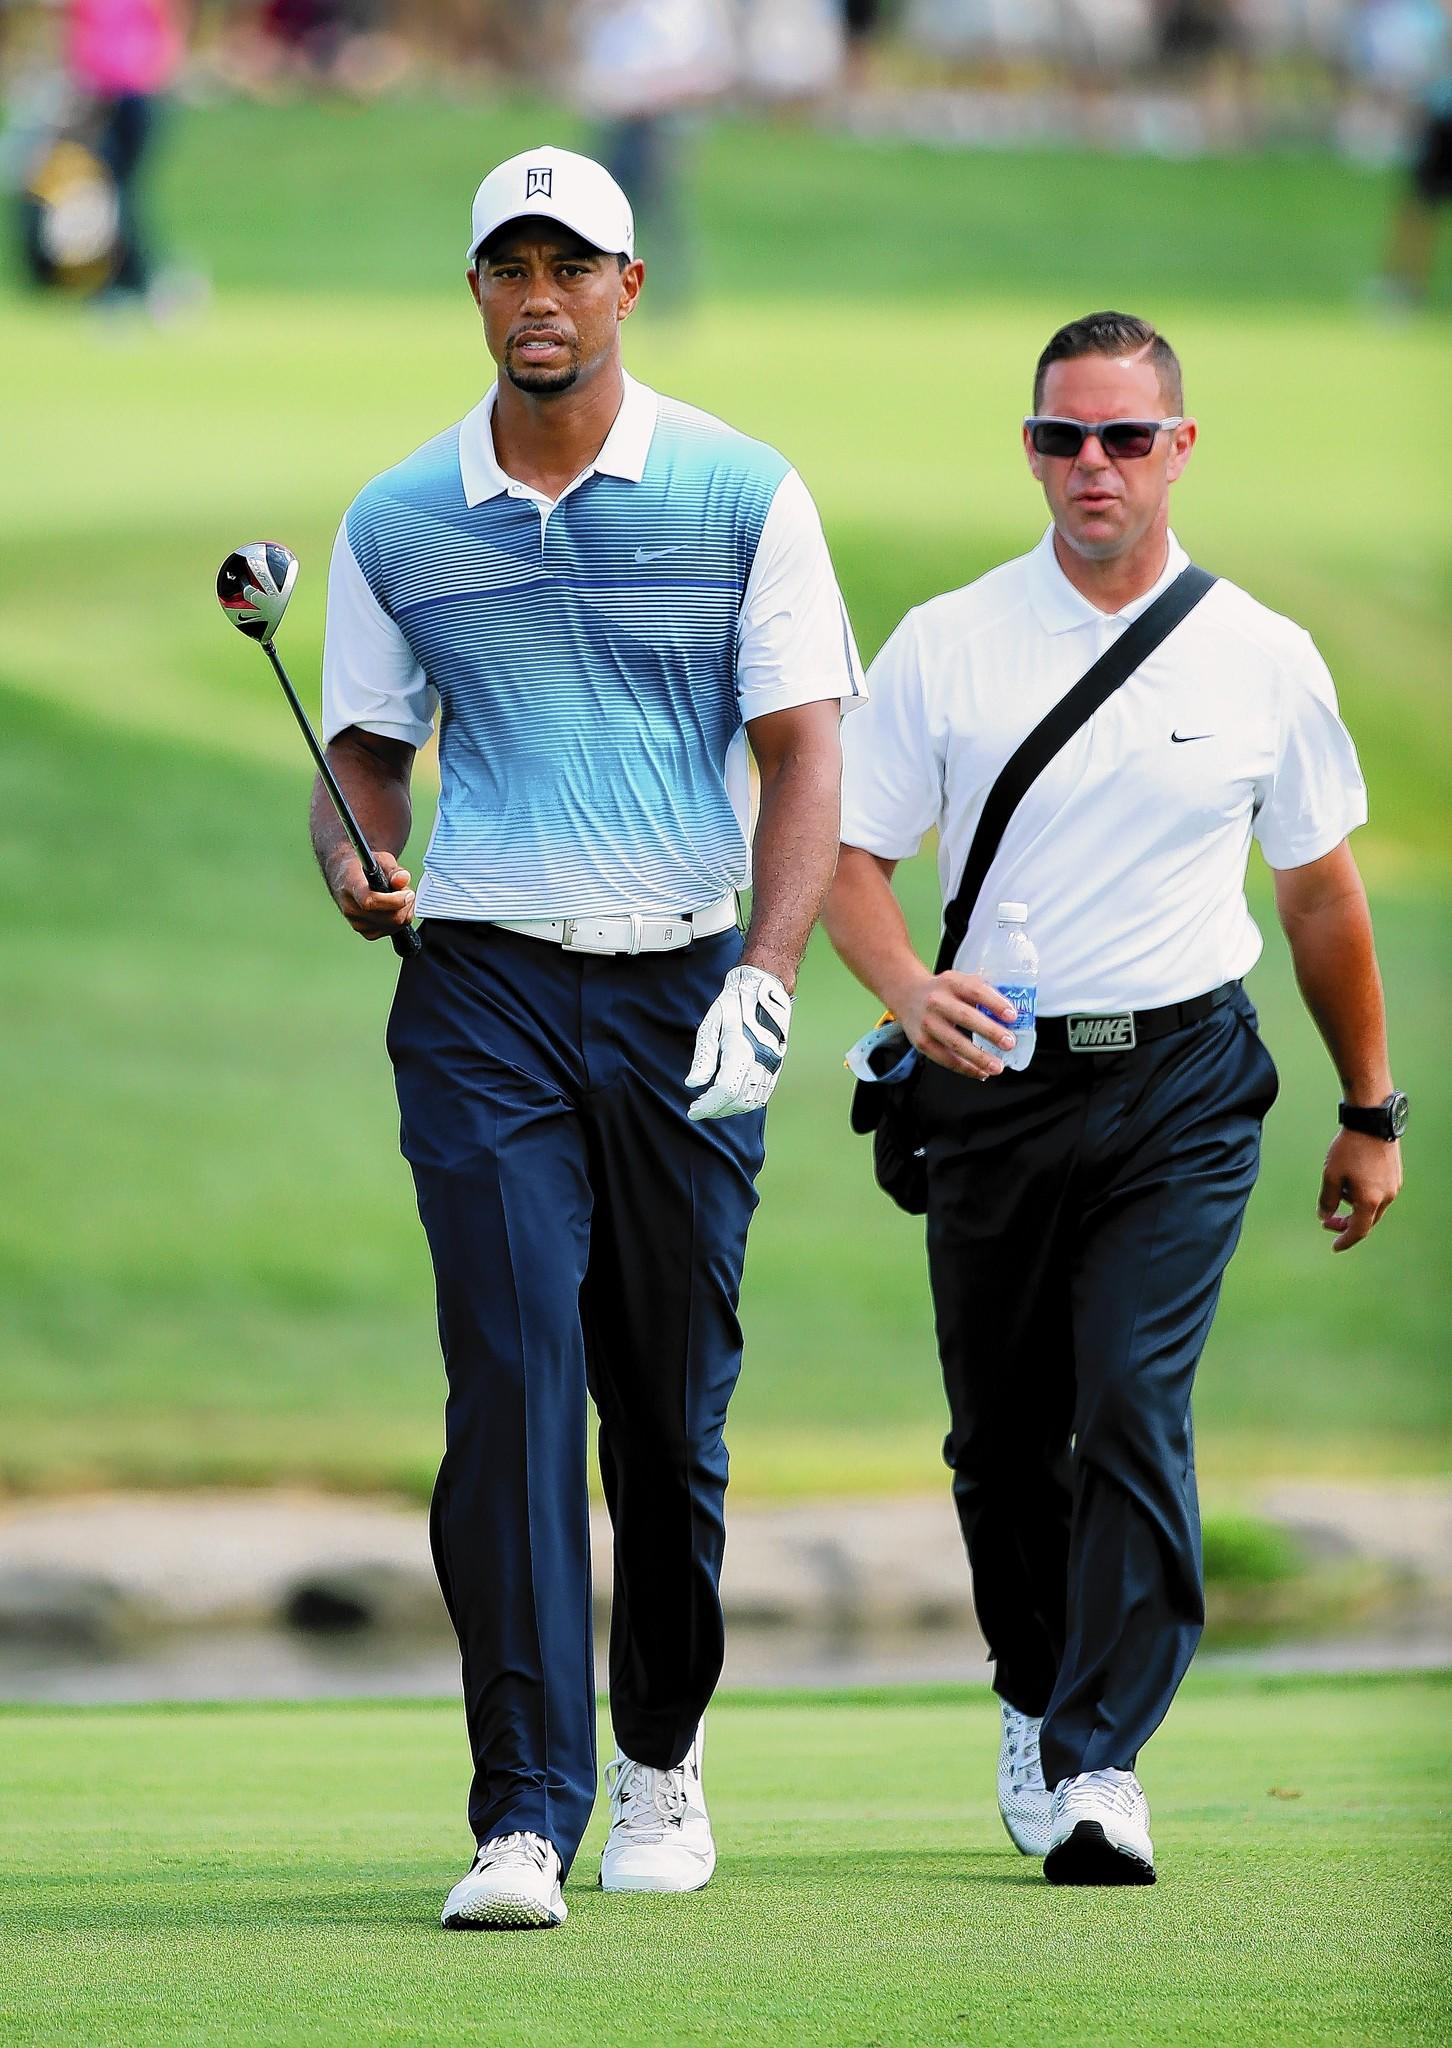 Tiger Woods, left, of the United States walks with golf instructor Sean Foley during a practice round prior to the start of the 96th PGA Championship at Valhalla Golf Club on August 6, 2014 in Louisville, Kentucky.